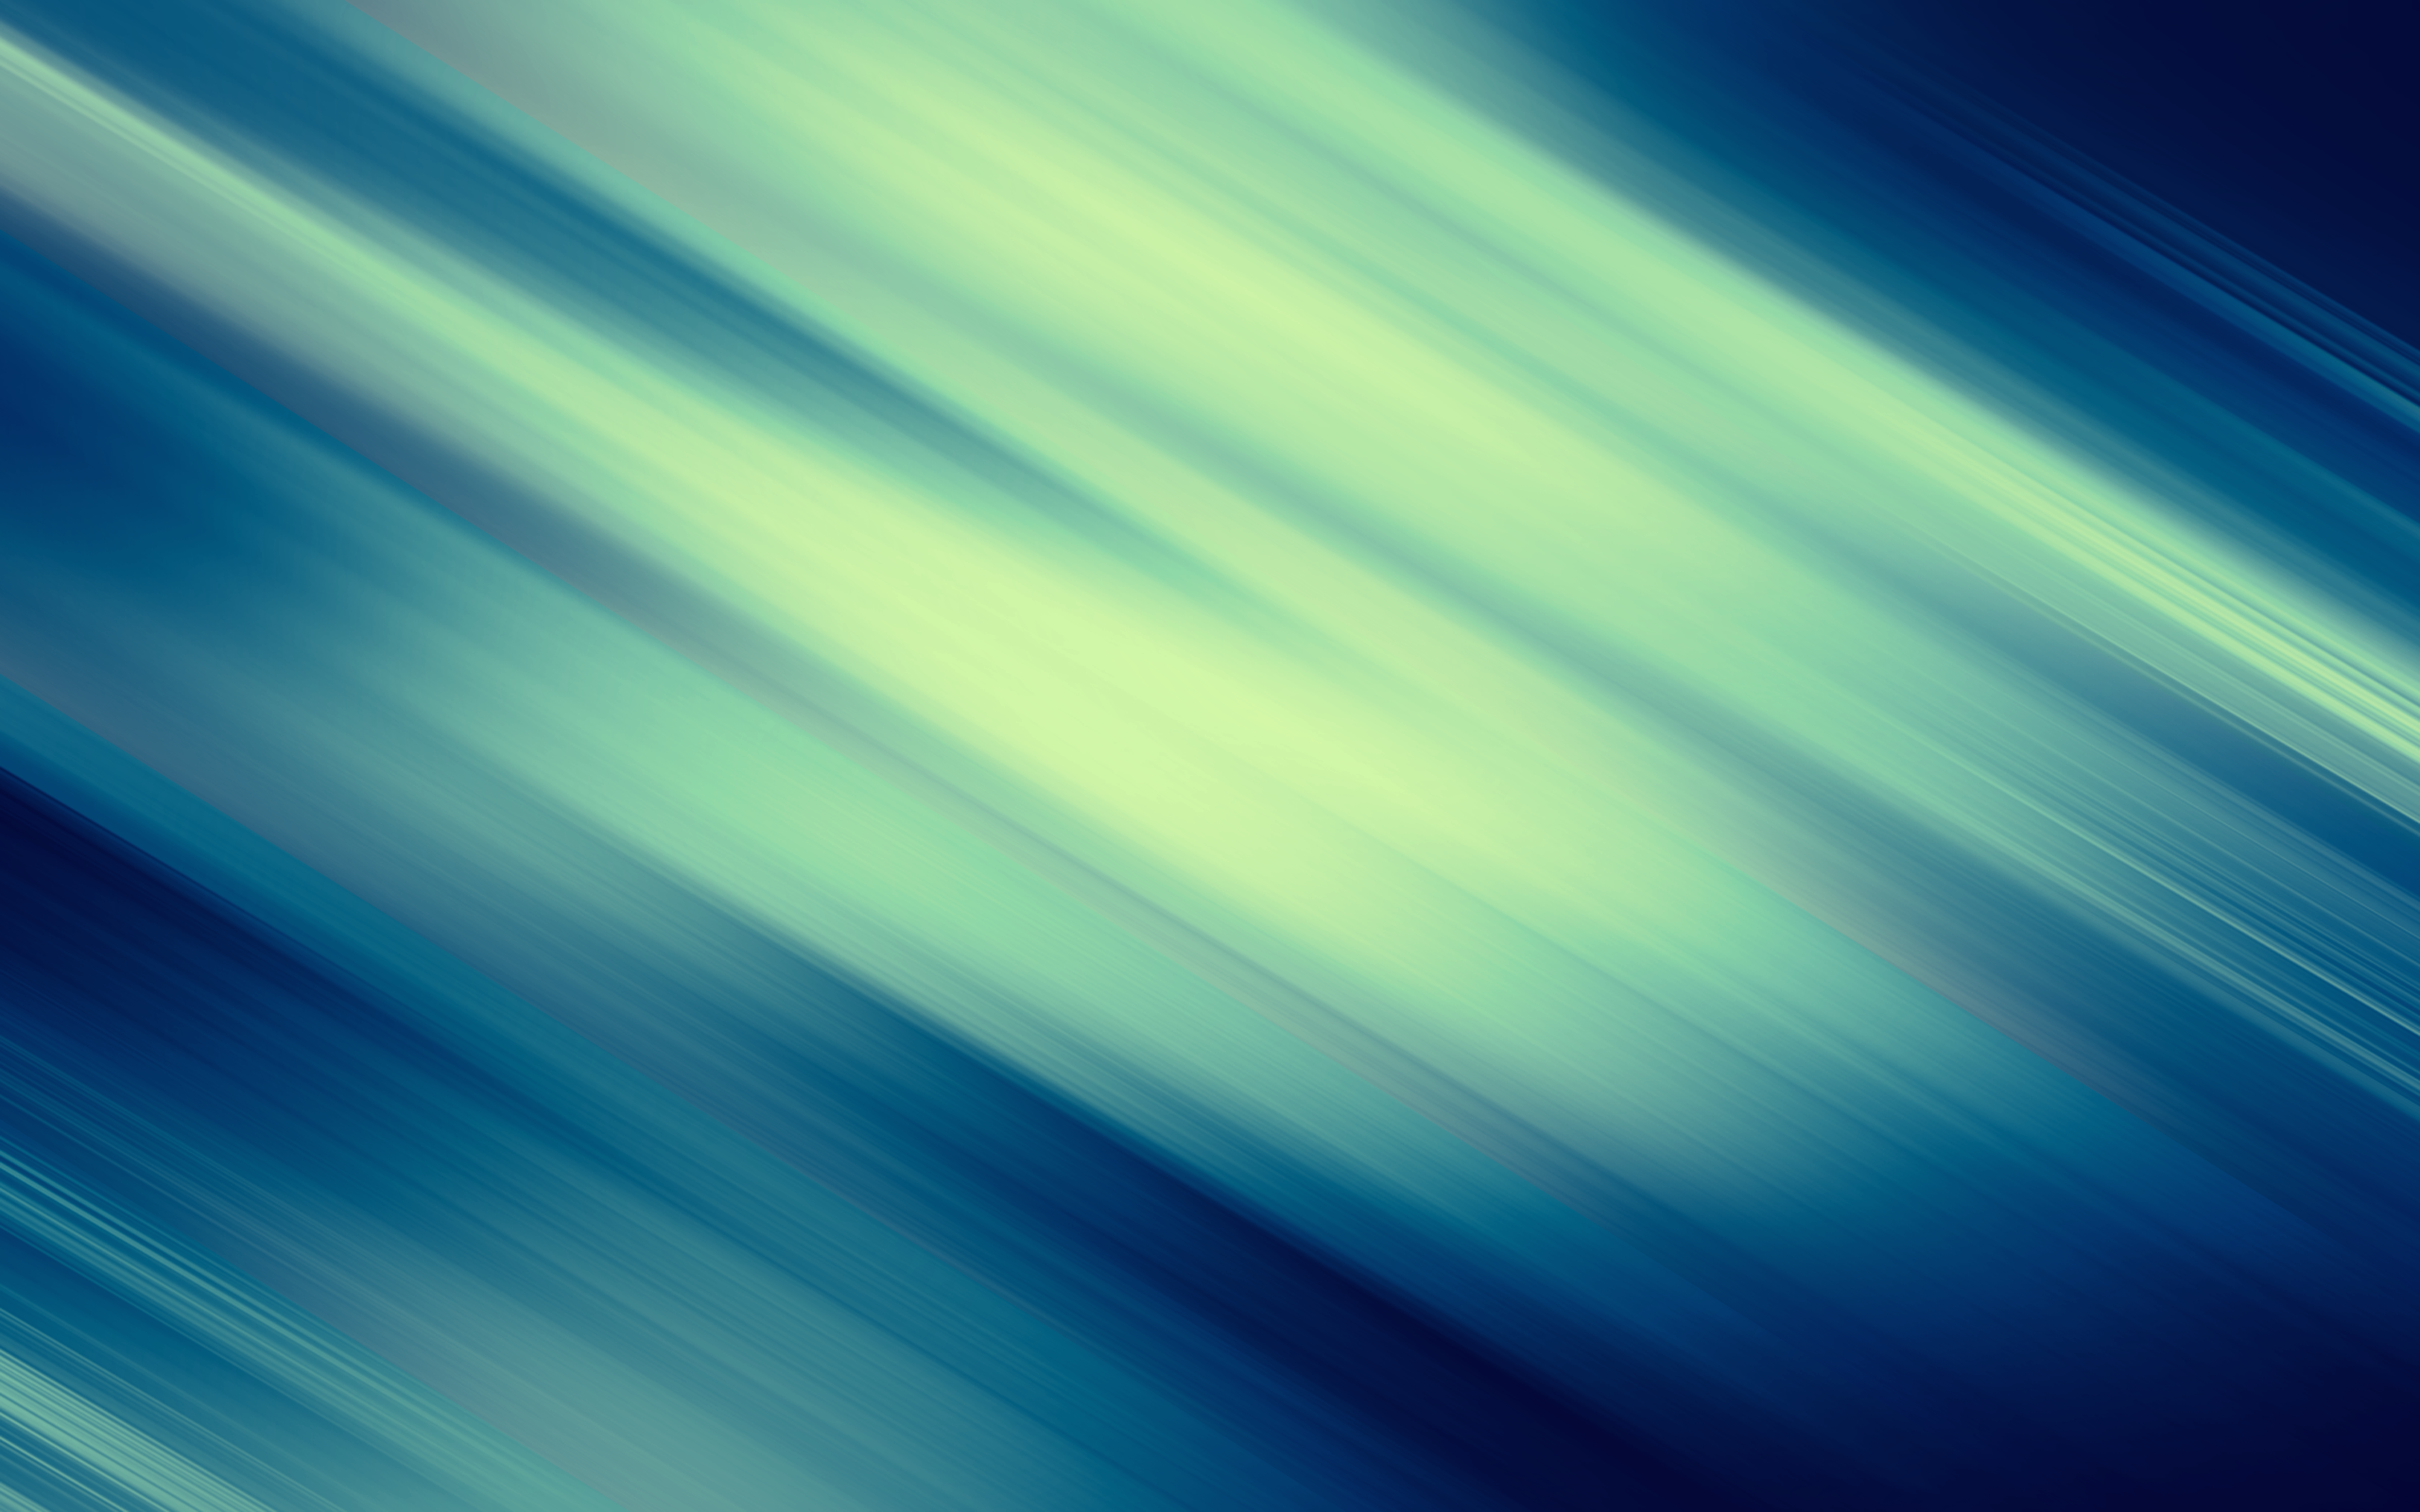 retroBLUE by lethalNIK-ART, abstract, wallpaper, digital art, design, speed